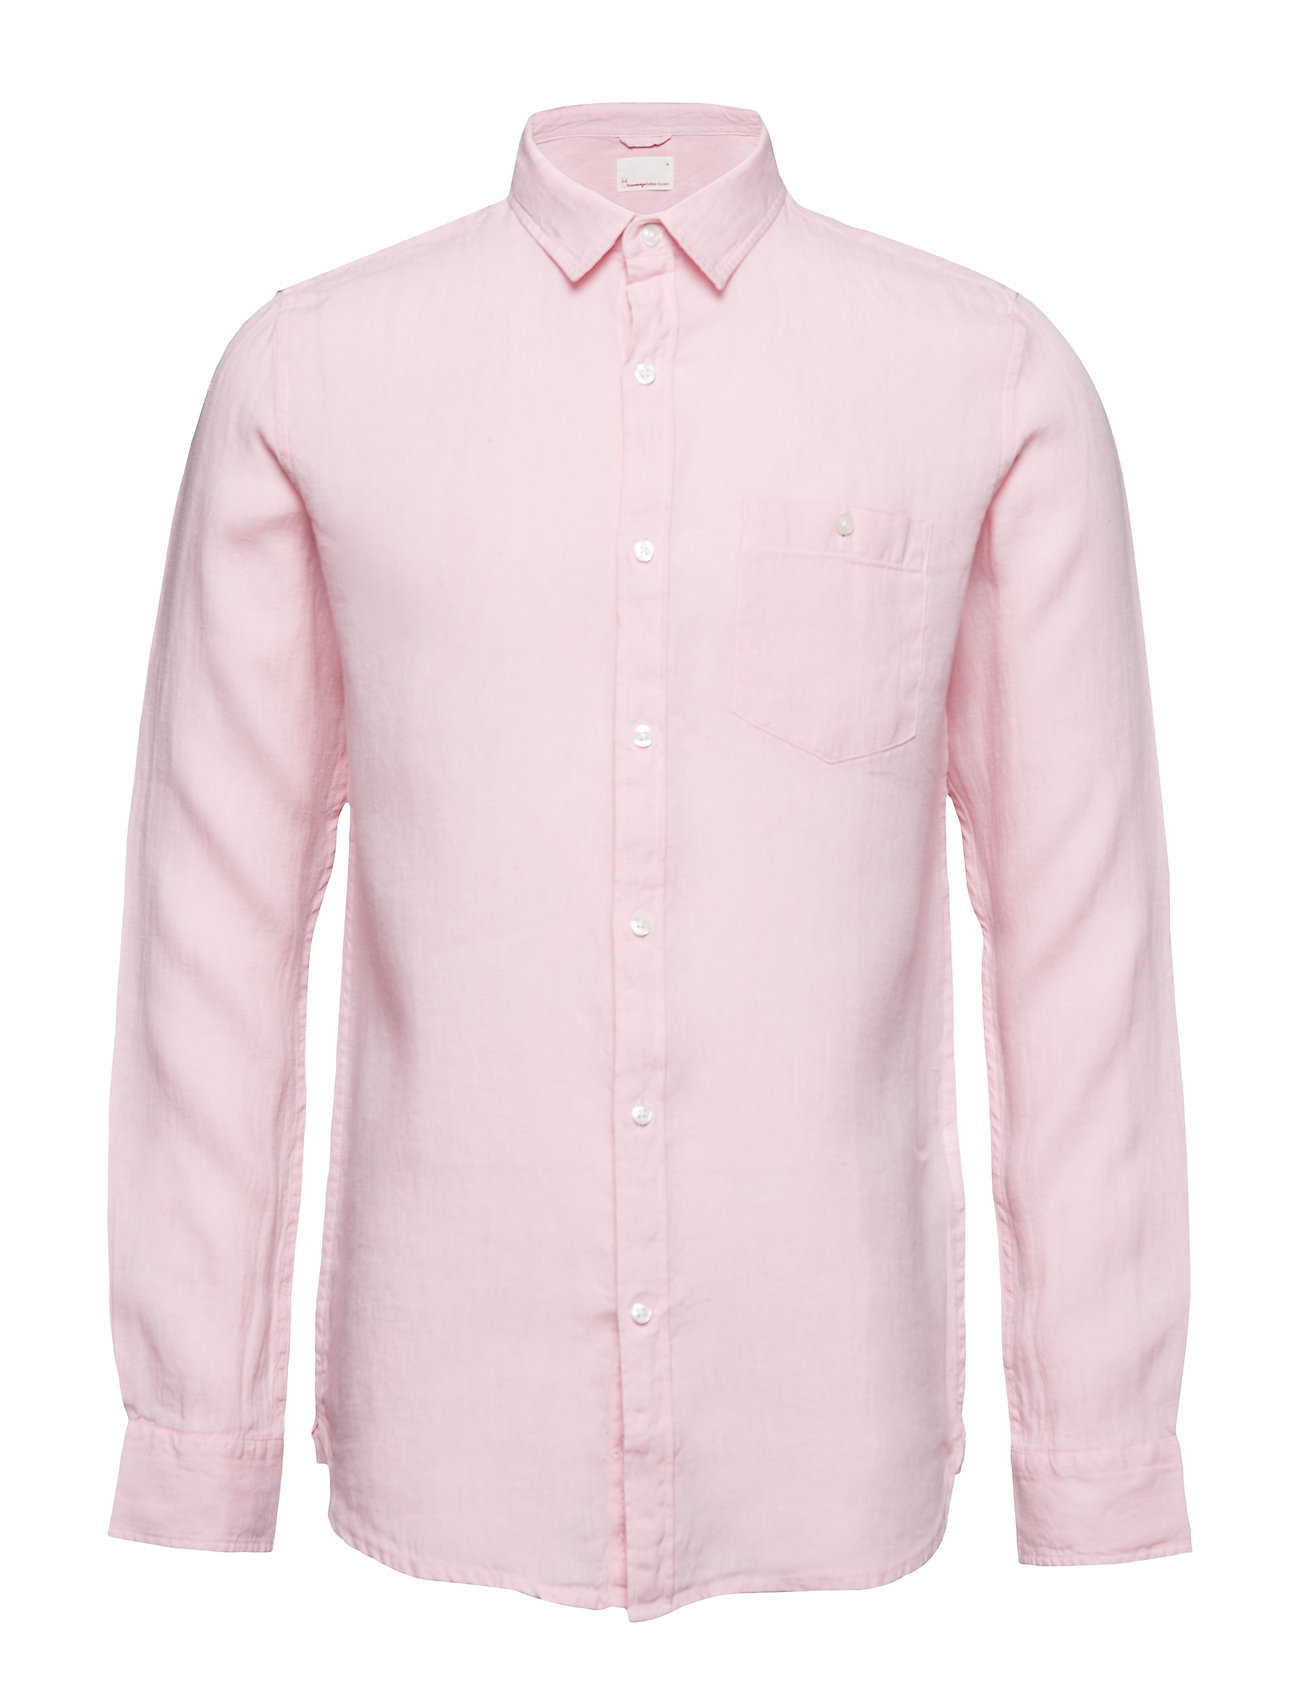 Knowledge Cotton Apparel LARCH LS shirt - PINK NECTAR